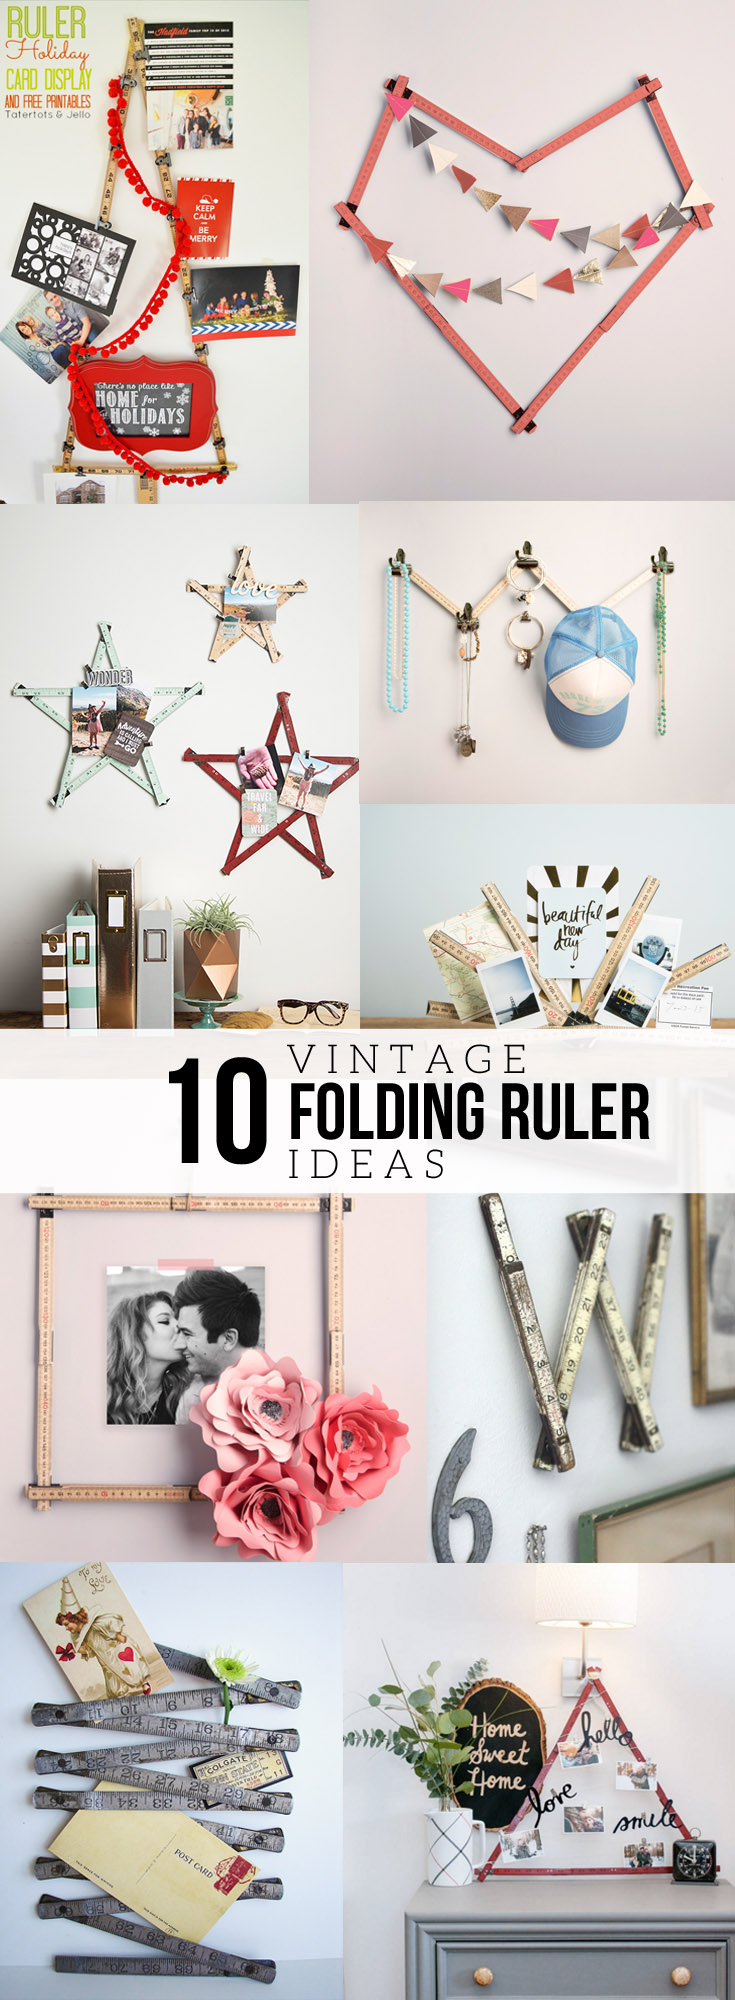 10 Vintage Folding Ruler Ideas, DIY Photo Display Idea using a Vintage Folding Ruler, Instagram Photo Display, by @CraftivityD